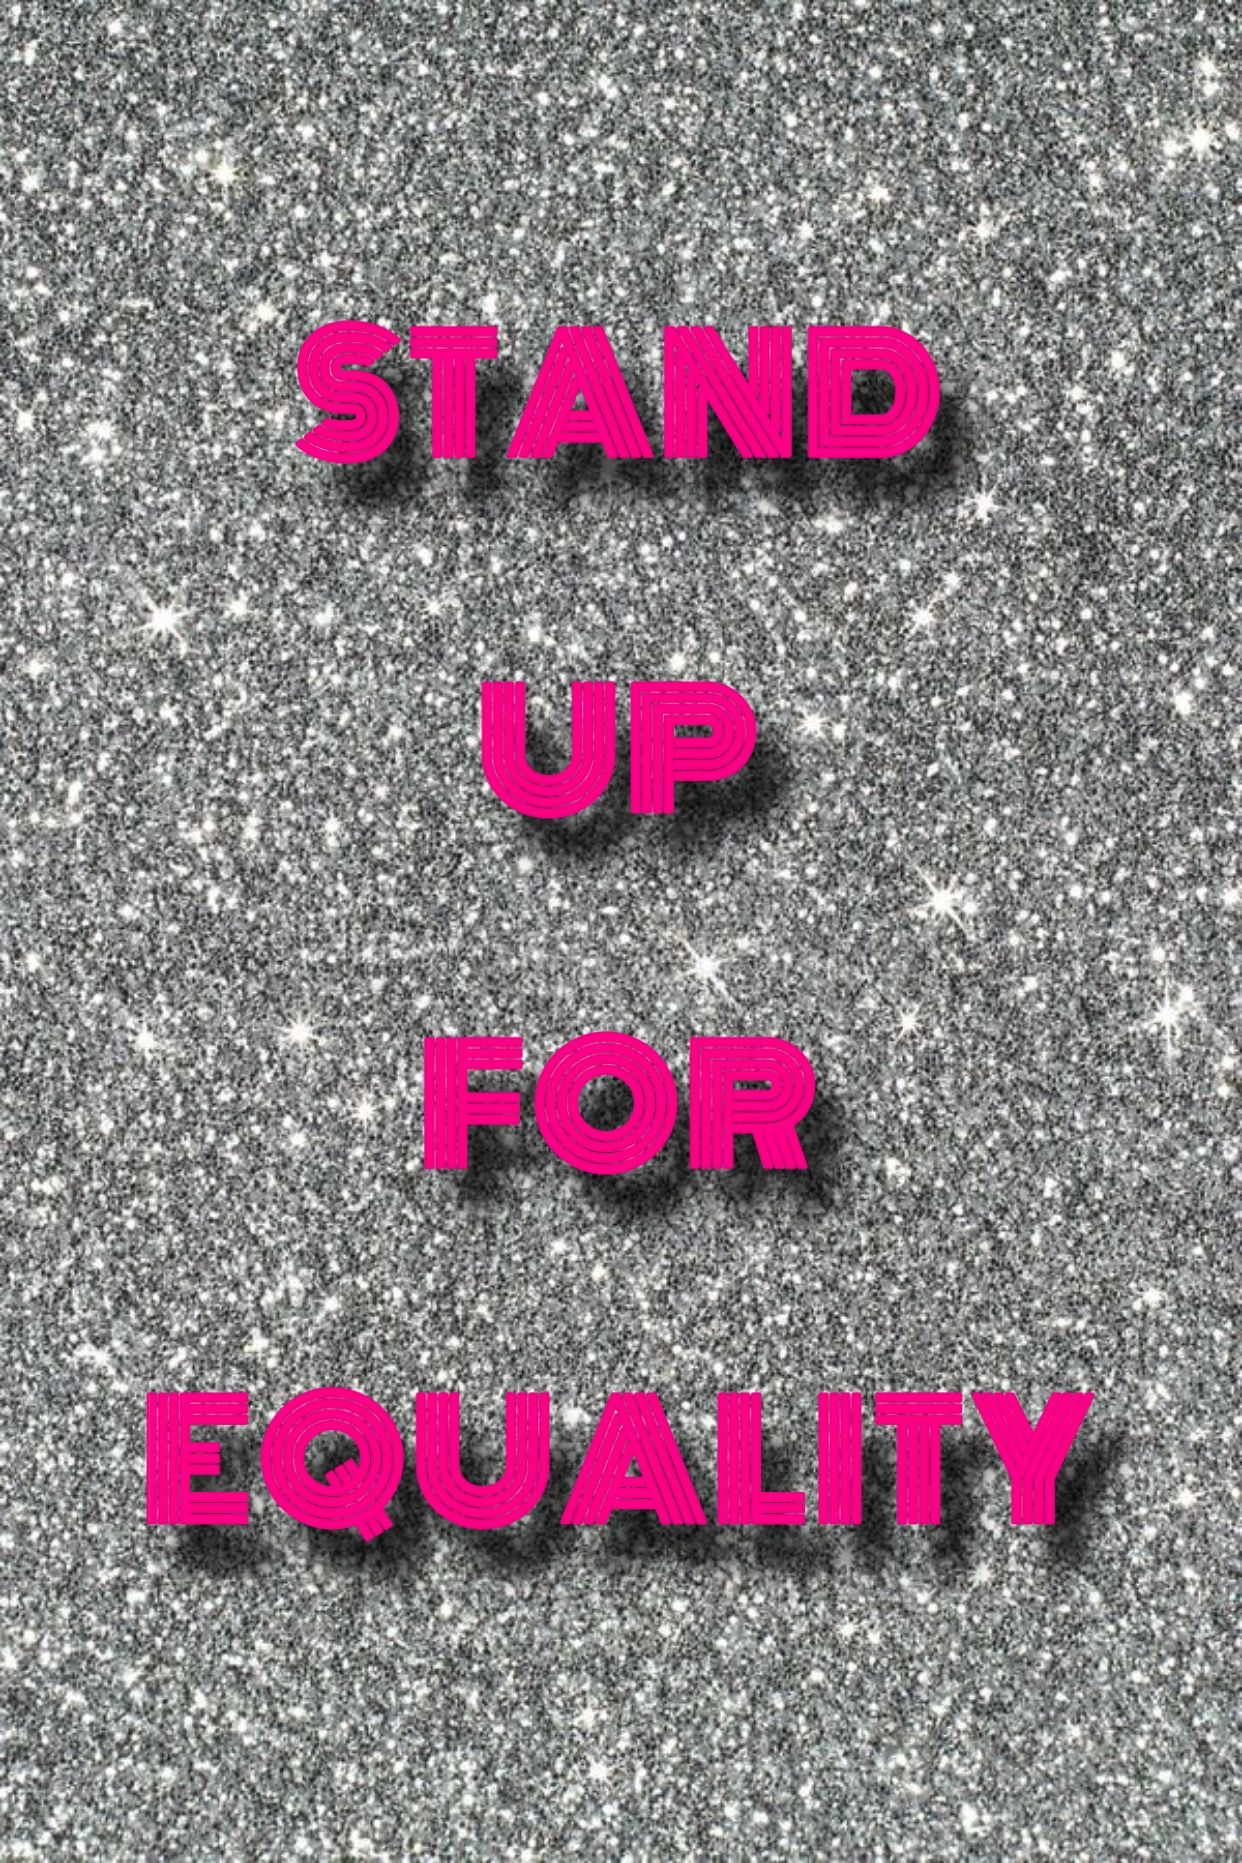 Stand Up For Equality Black Lives Matter Art Pink Photo Aesthetic Collage